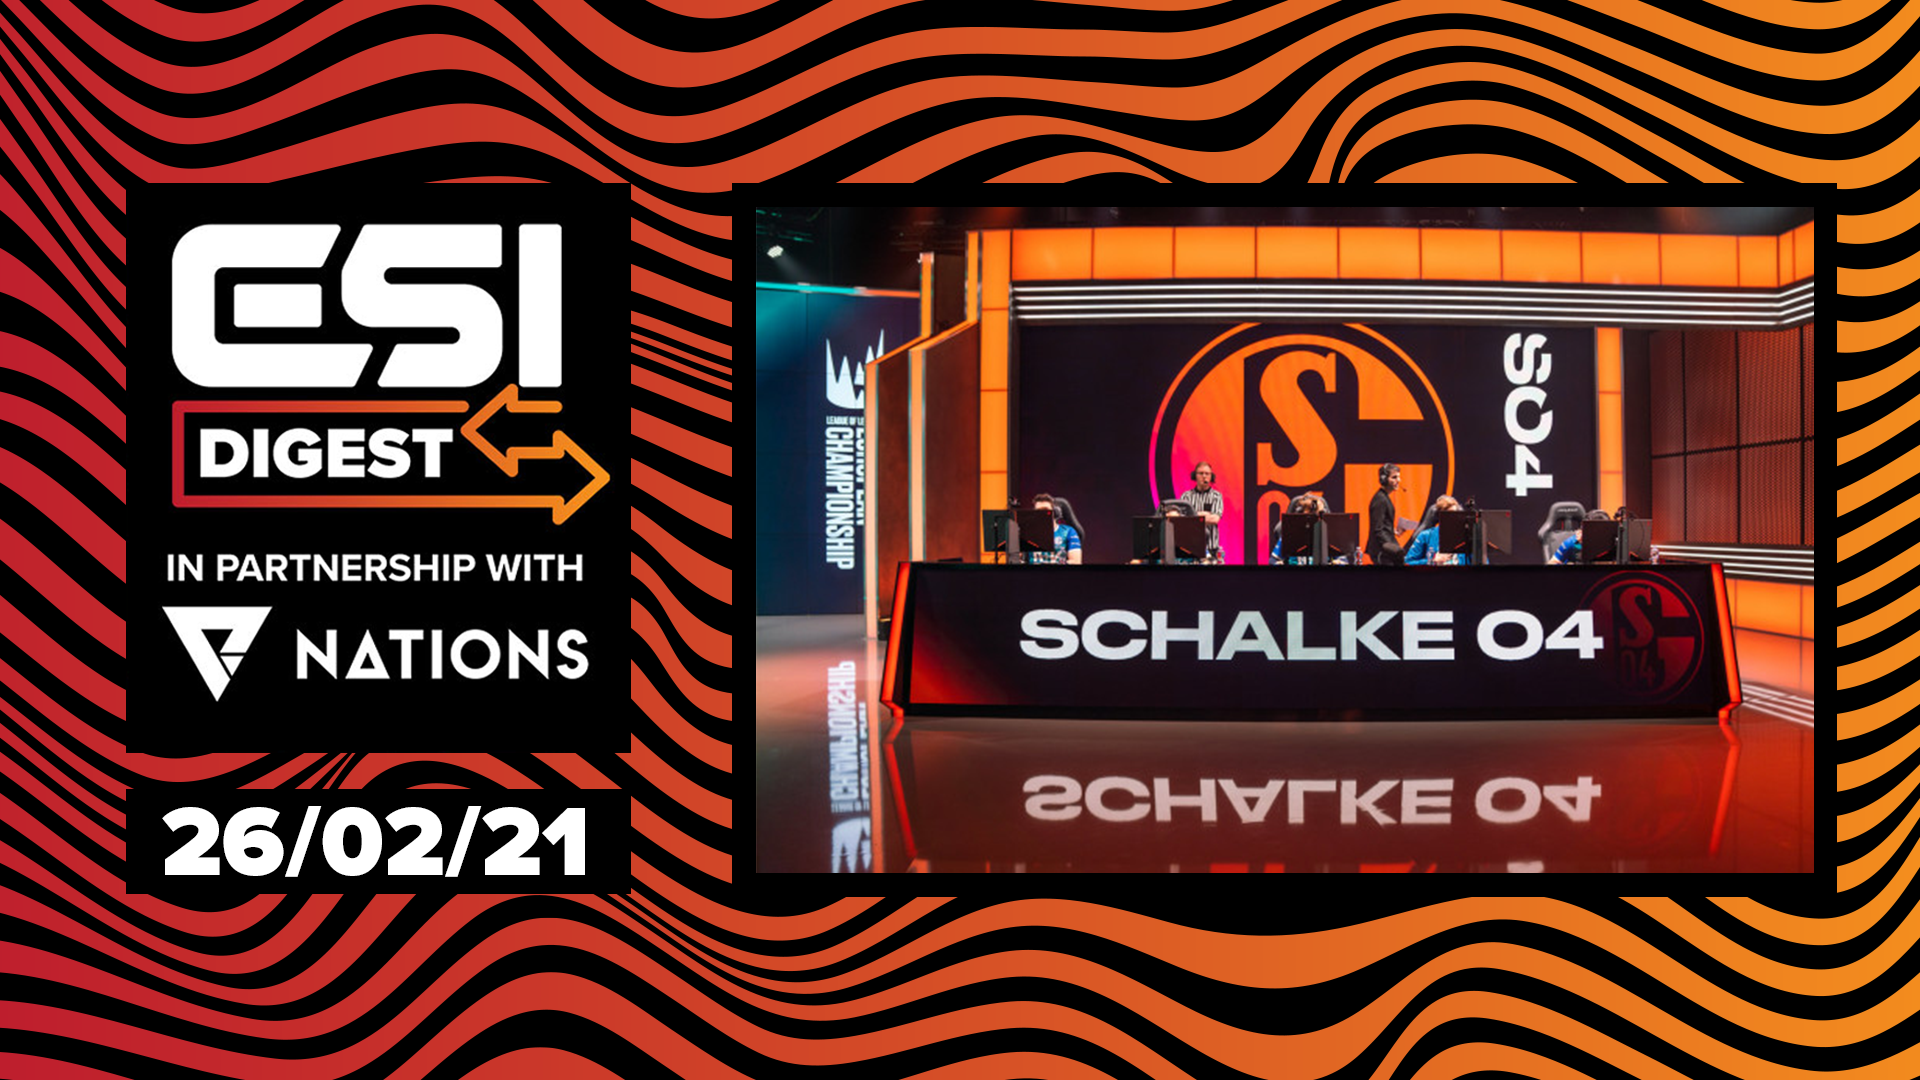 Schalke 04 possibly selling LEC spot, OverActive Media unveils esports venue plans | ESI Digest #31